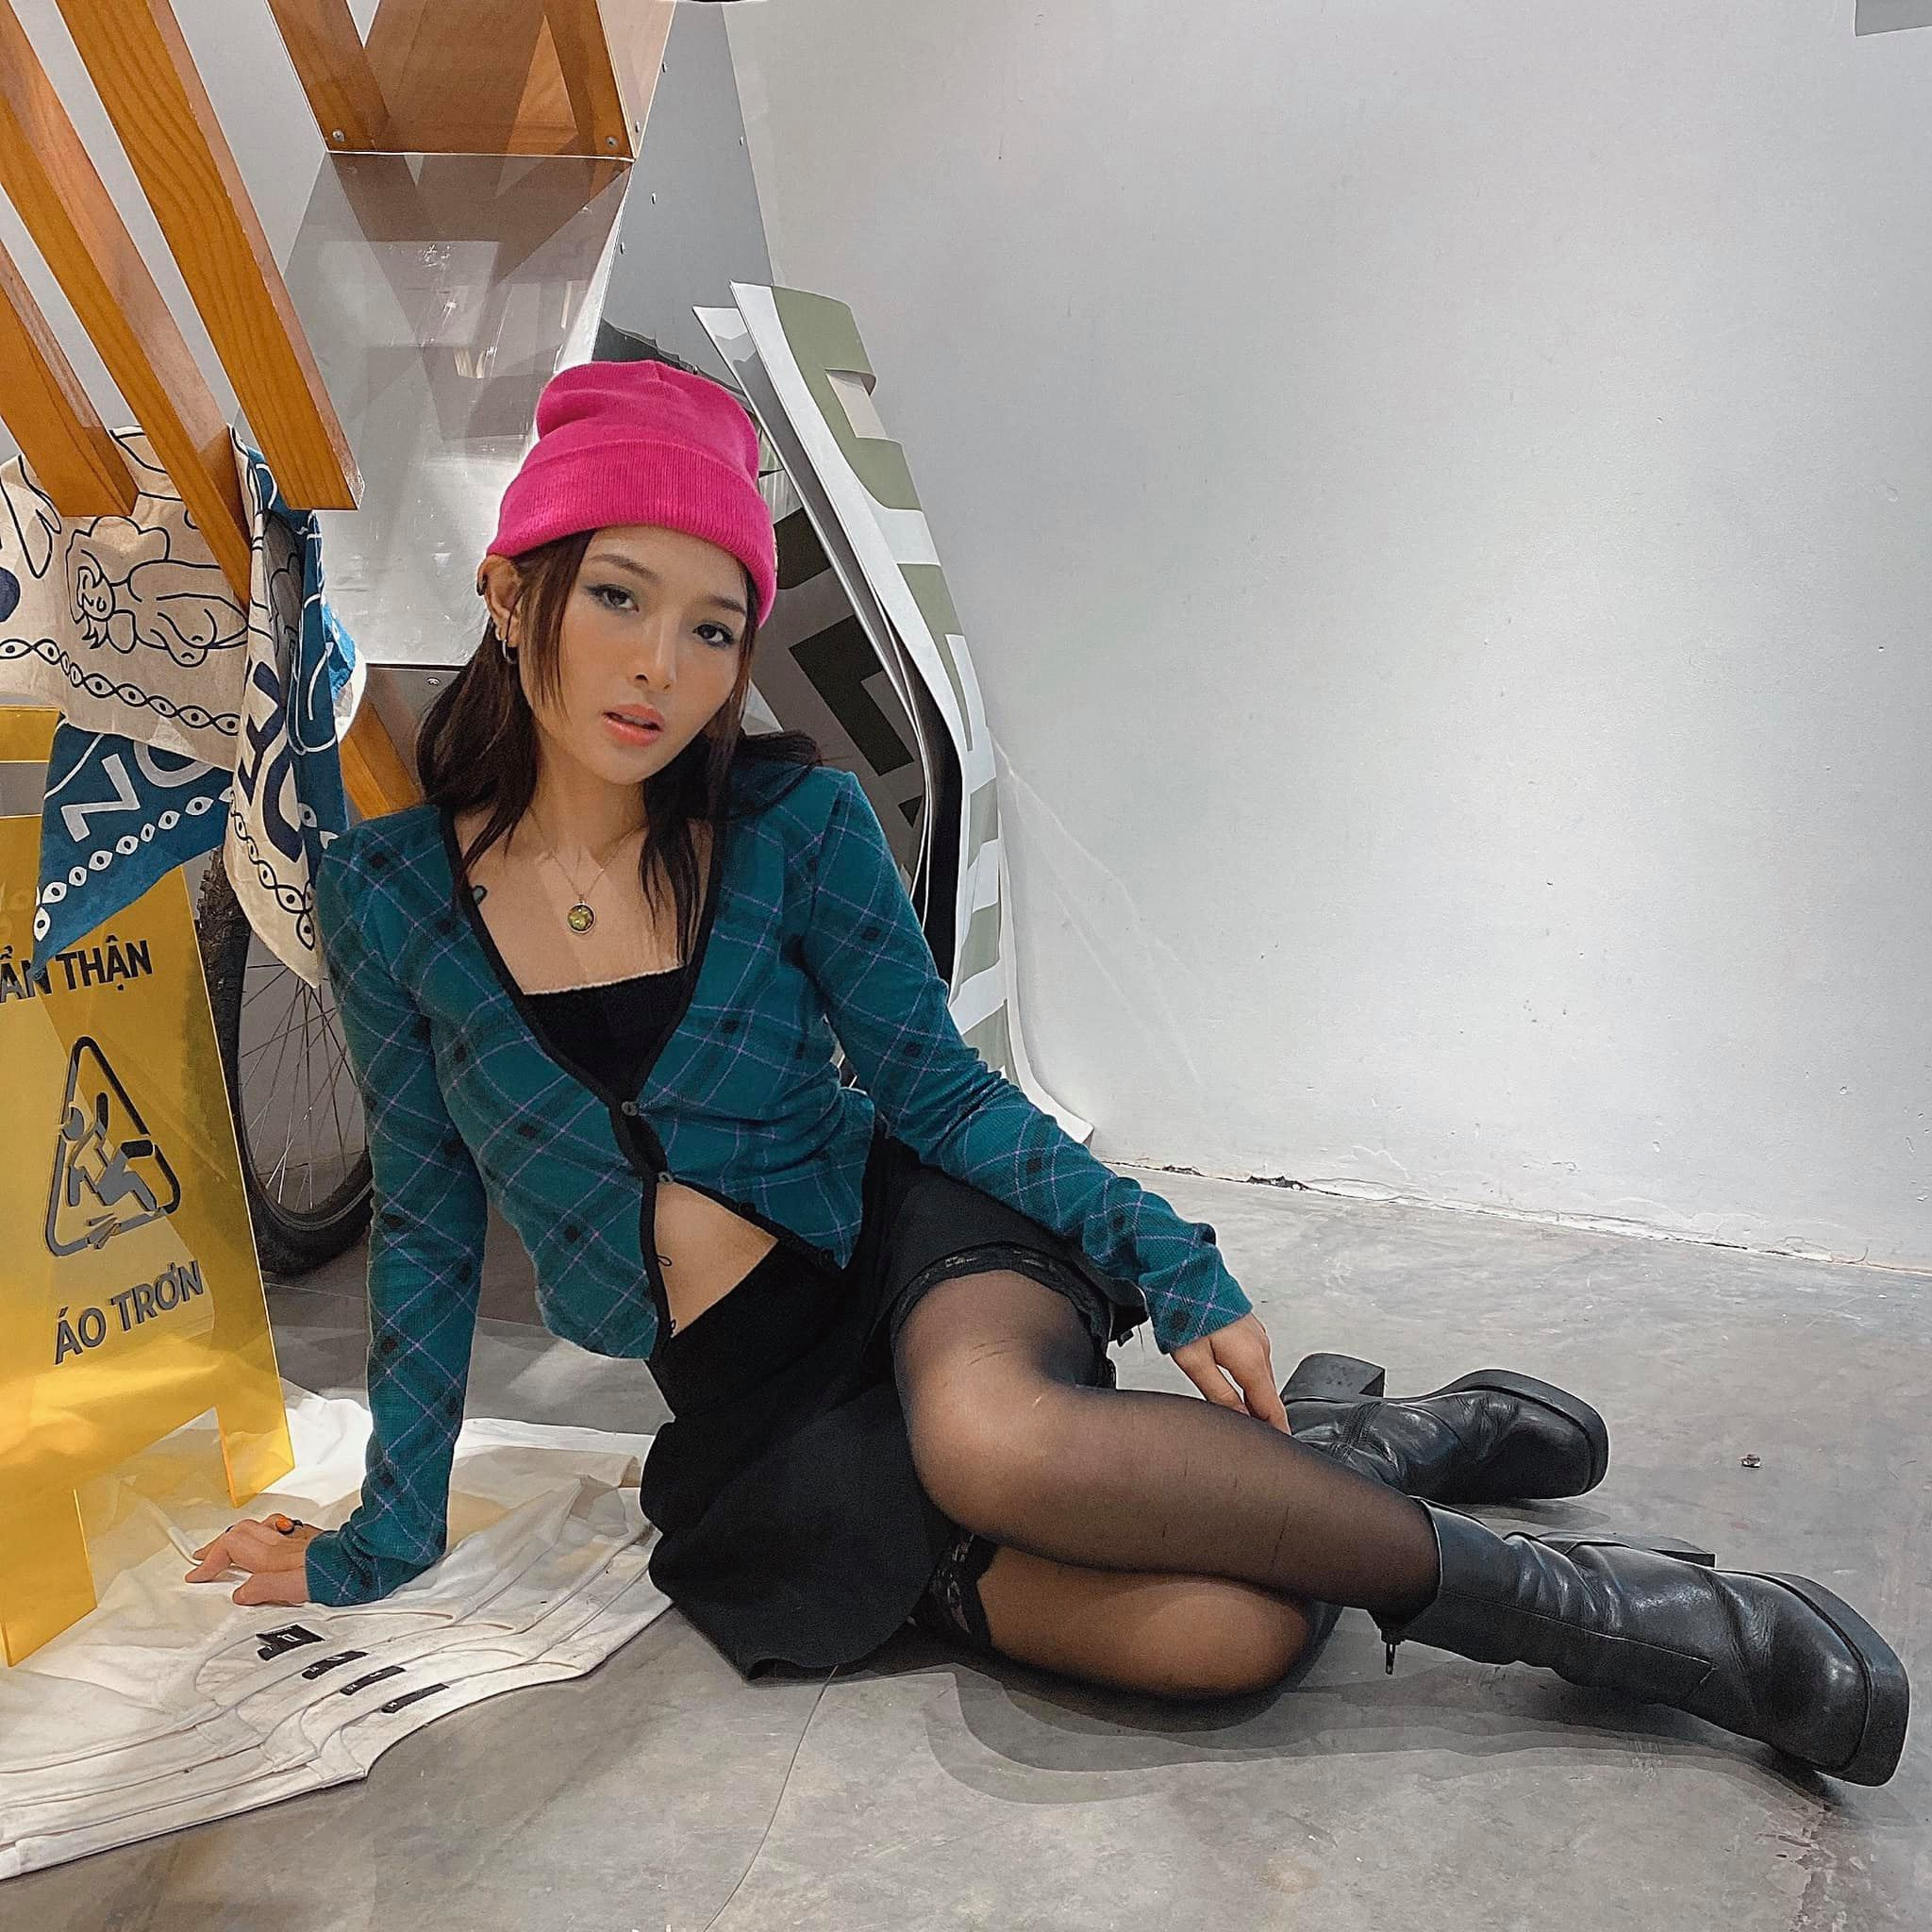 Chup anh can cuoc cong dan, hot girl